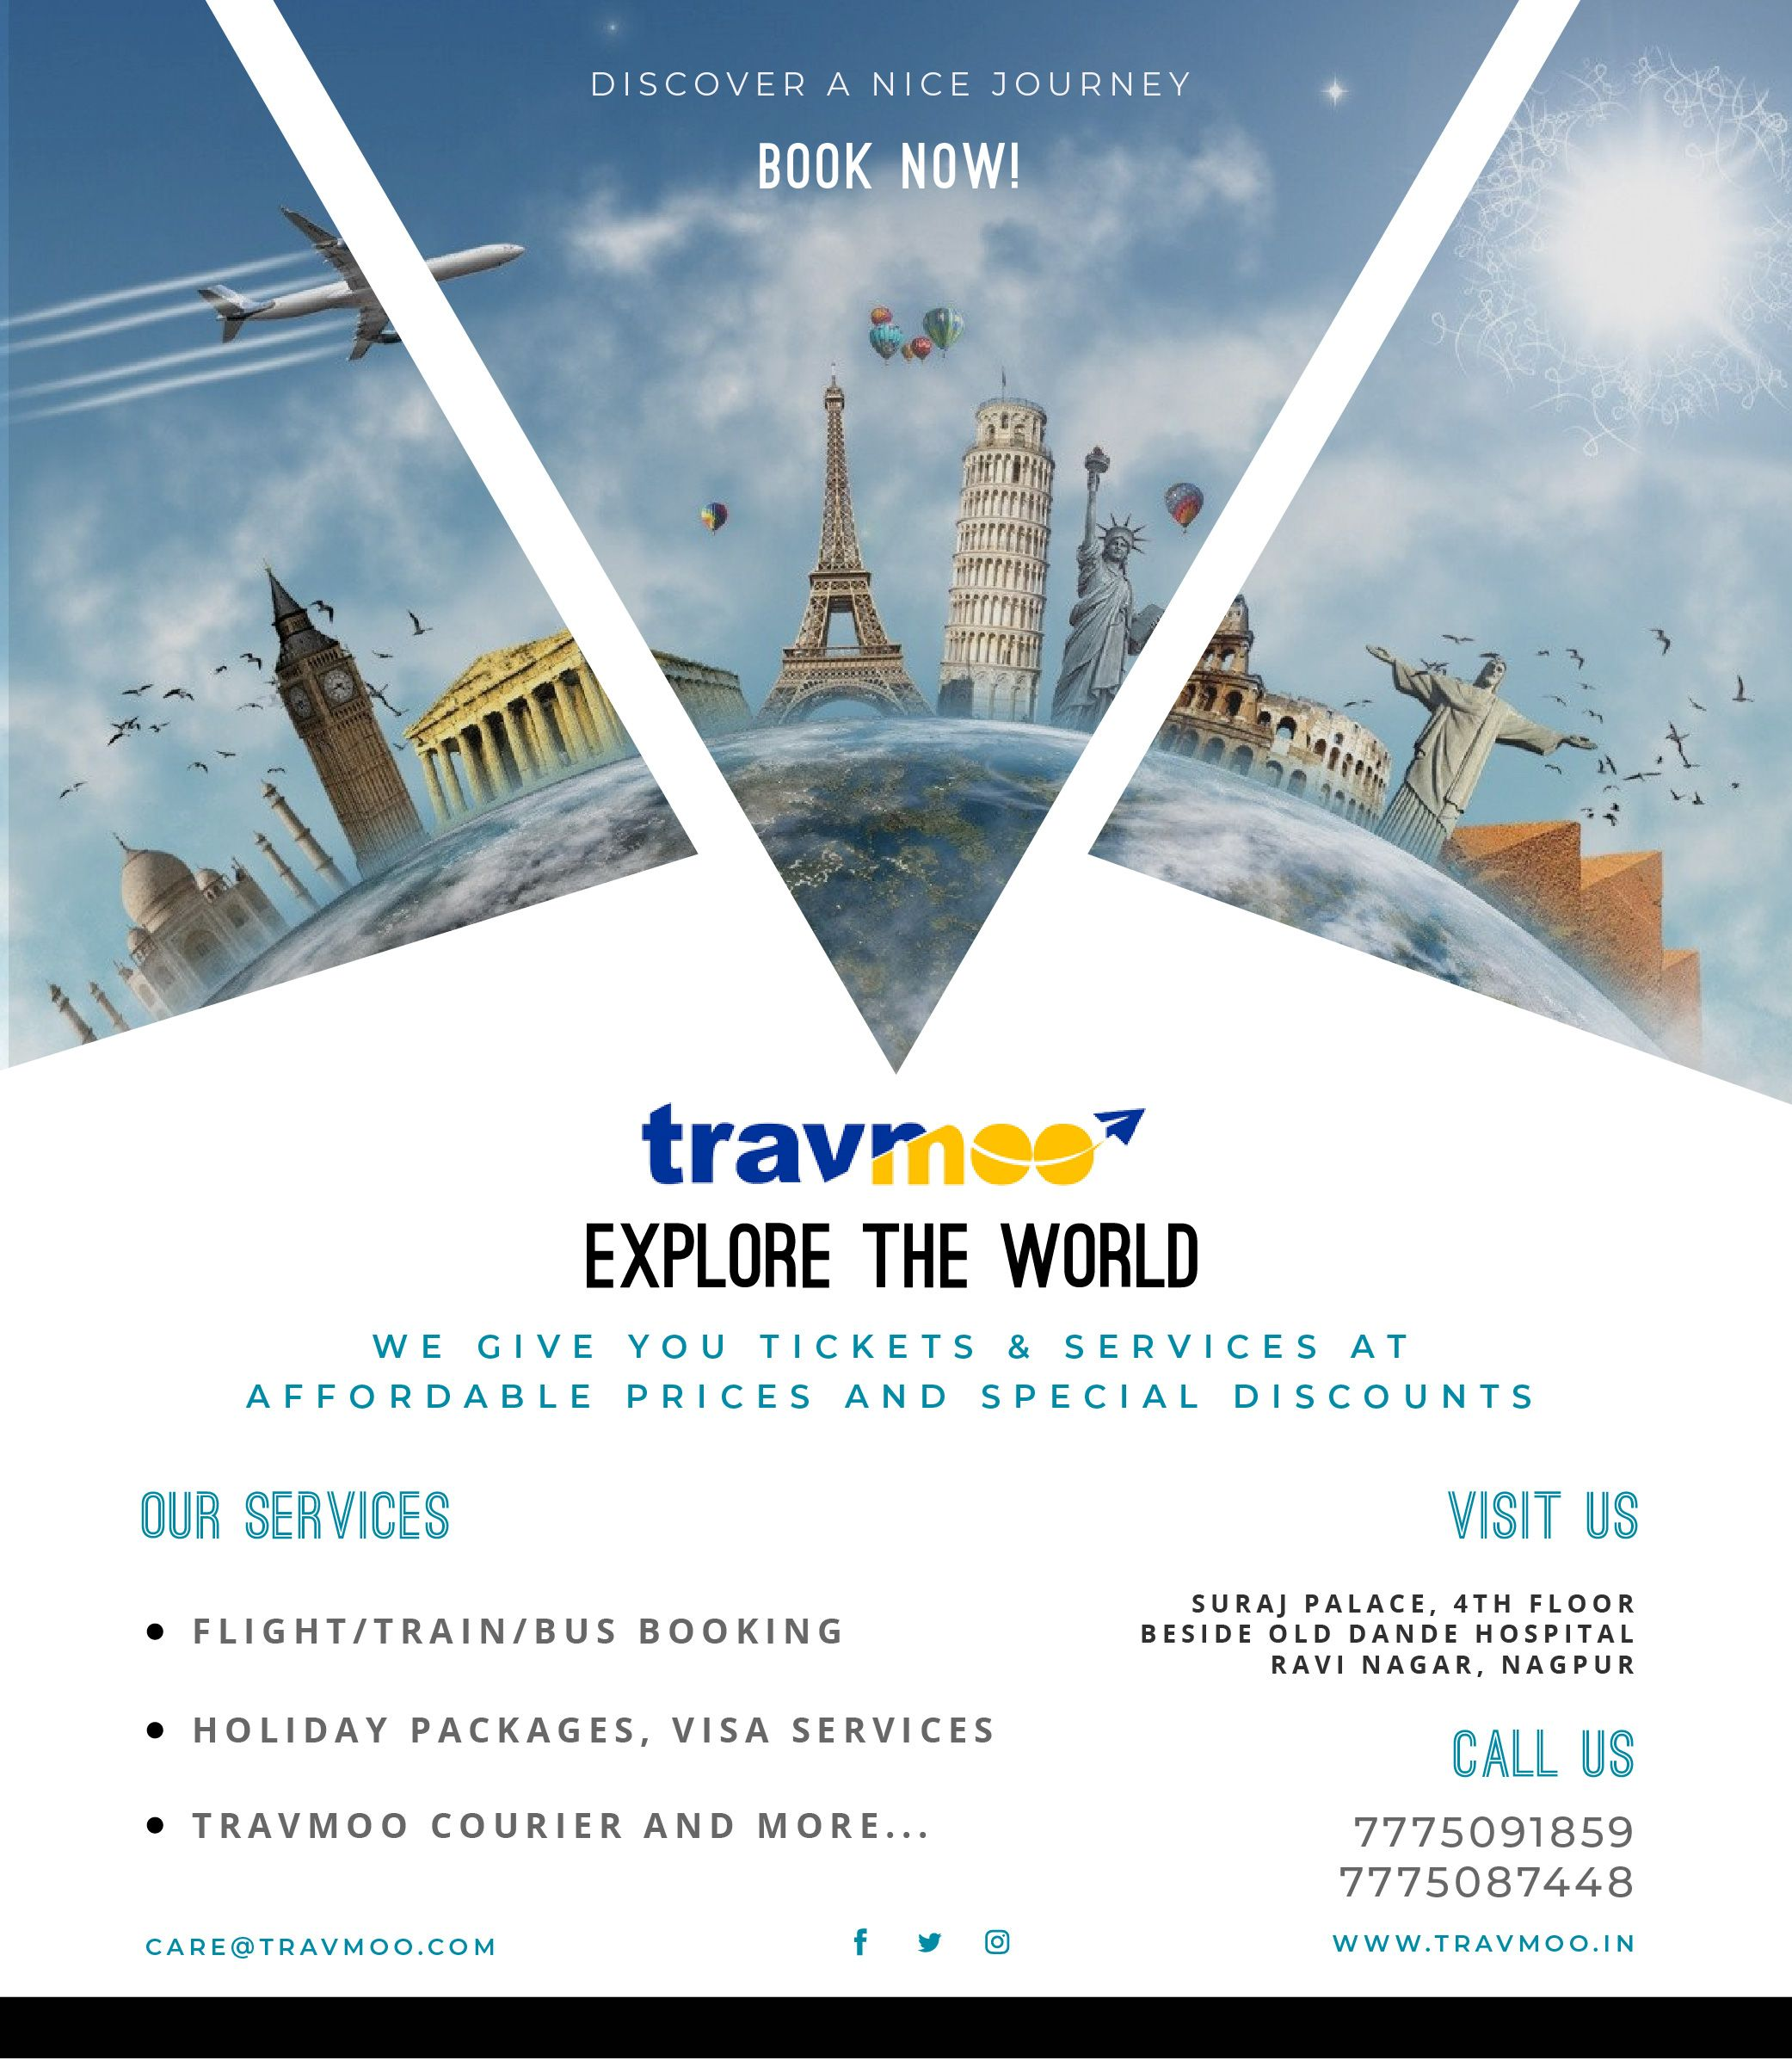 travmoo.in is one of the leading online travel portal of